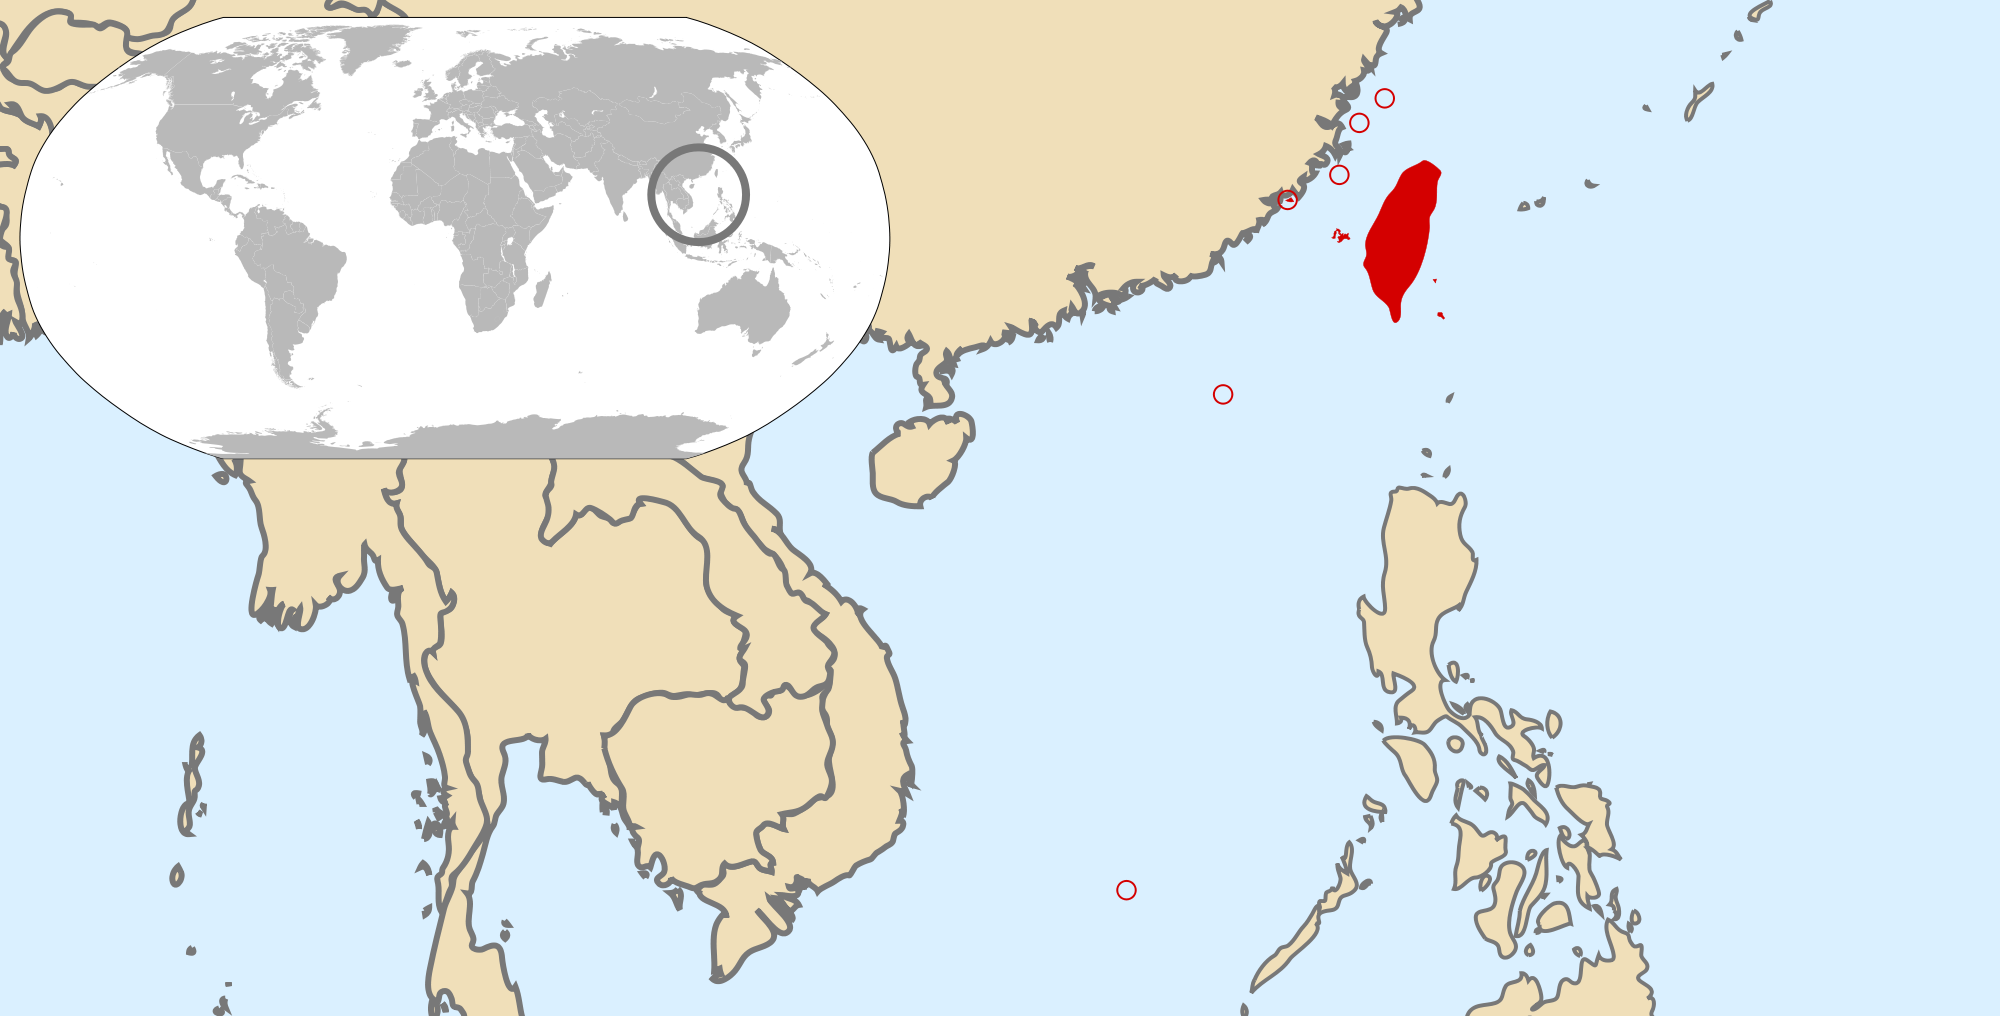 Location of the Taiwan in the World Map